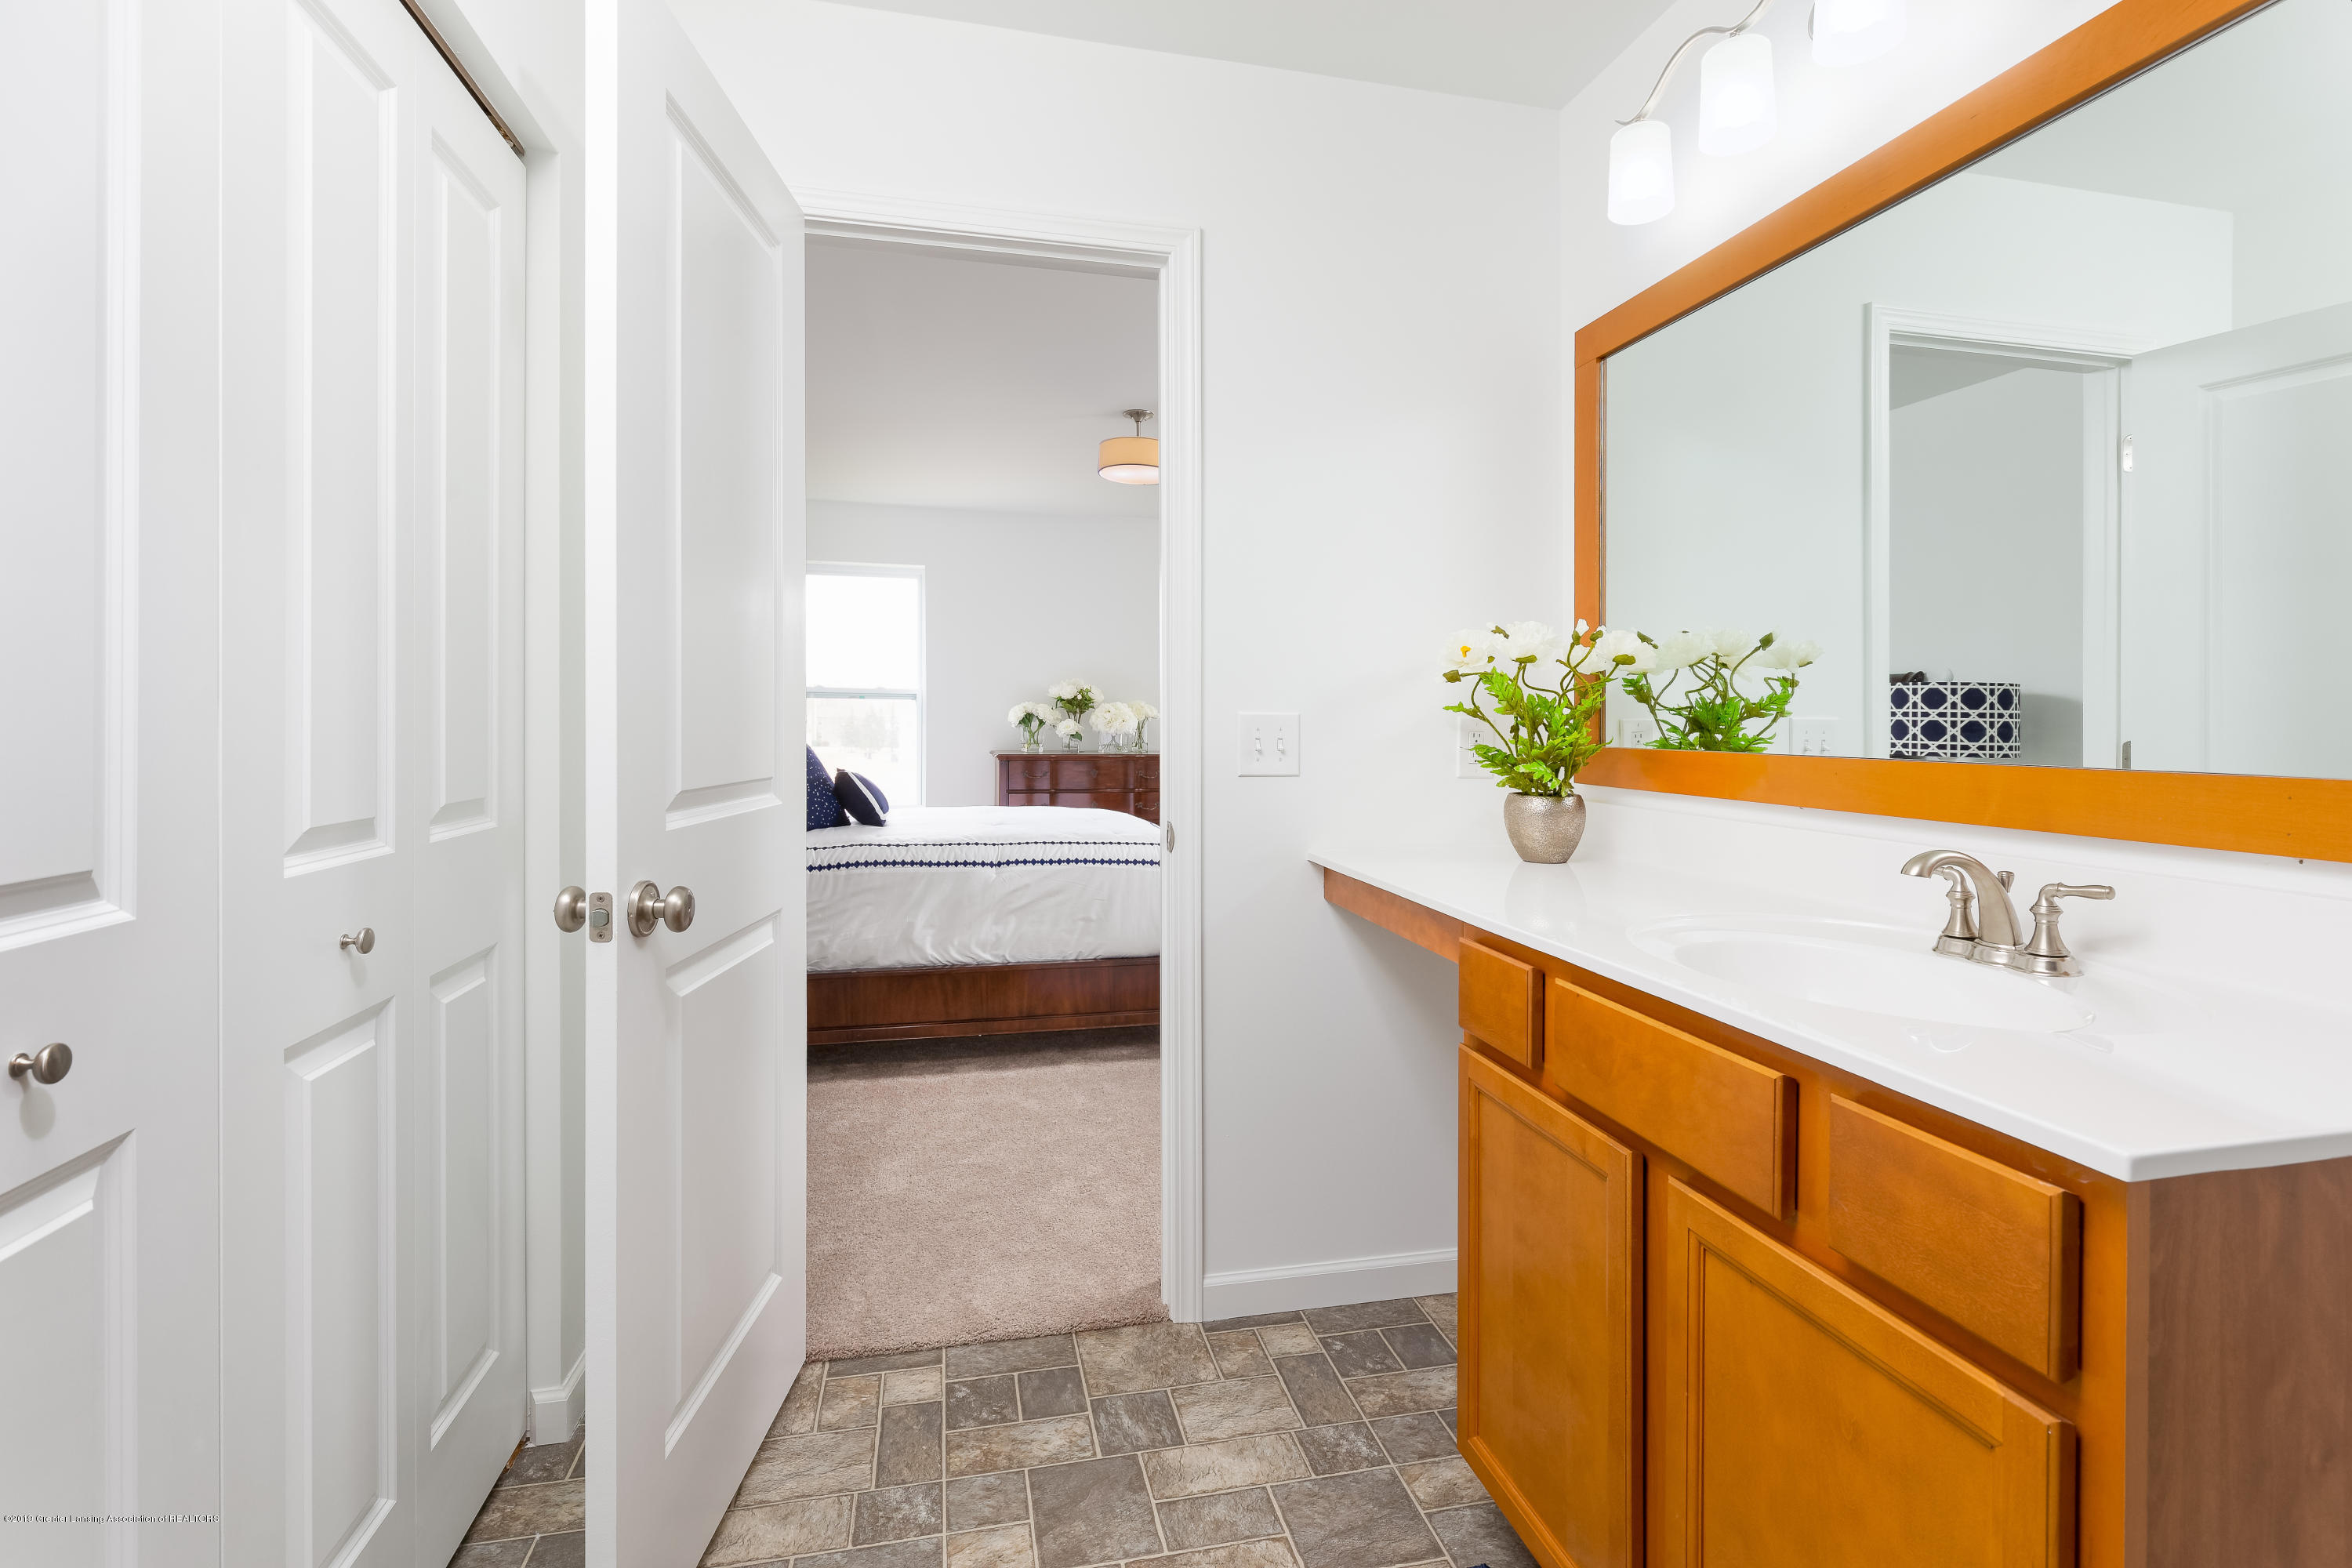 201 Ayla Drive - MasterBath TSP077-E2070-Staged-28 - 11